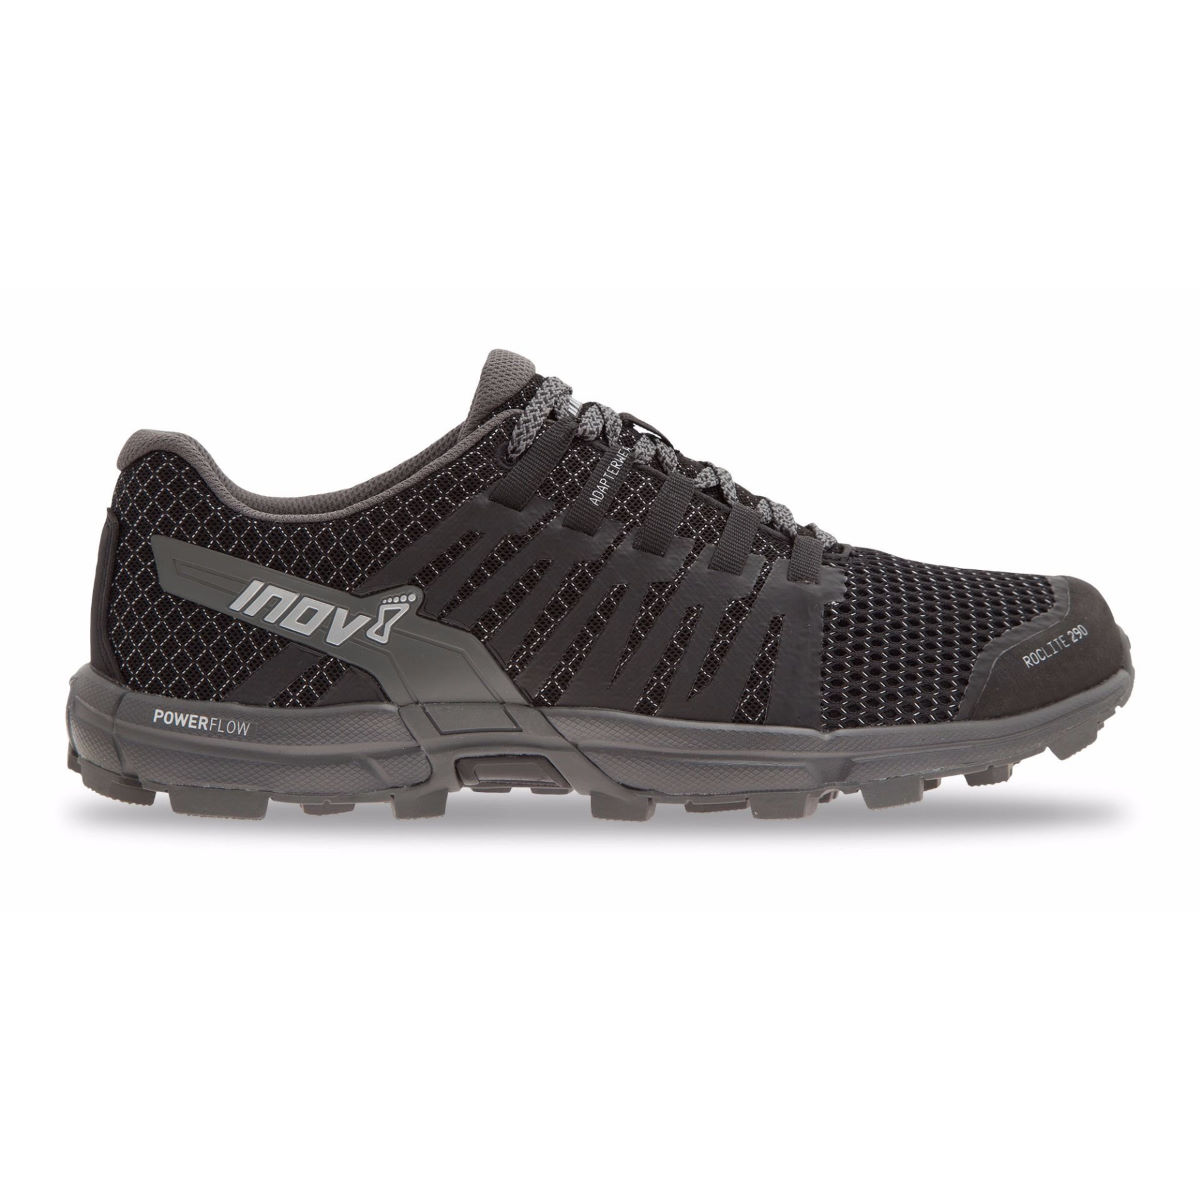 Chaussures Inov-8 Roclite 290 - UK 11 BLACK/GREY